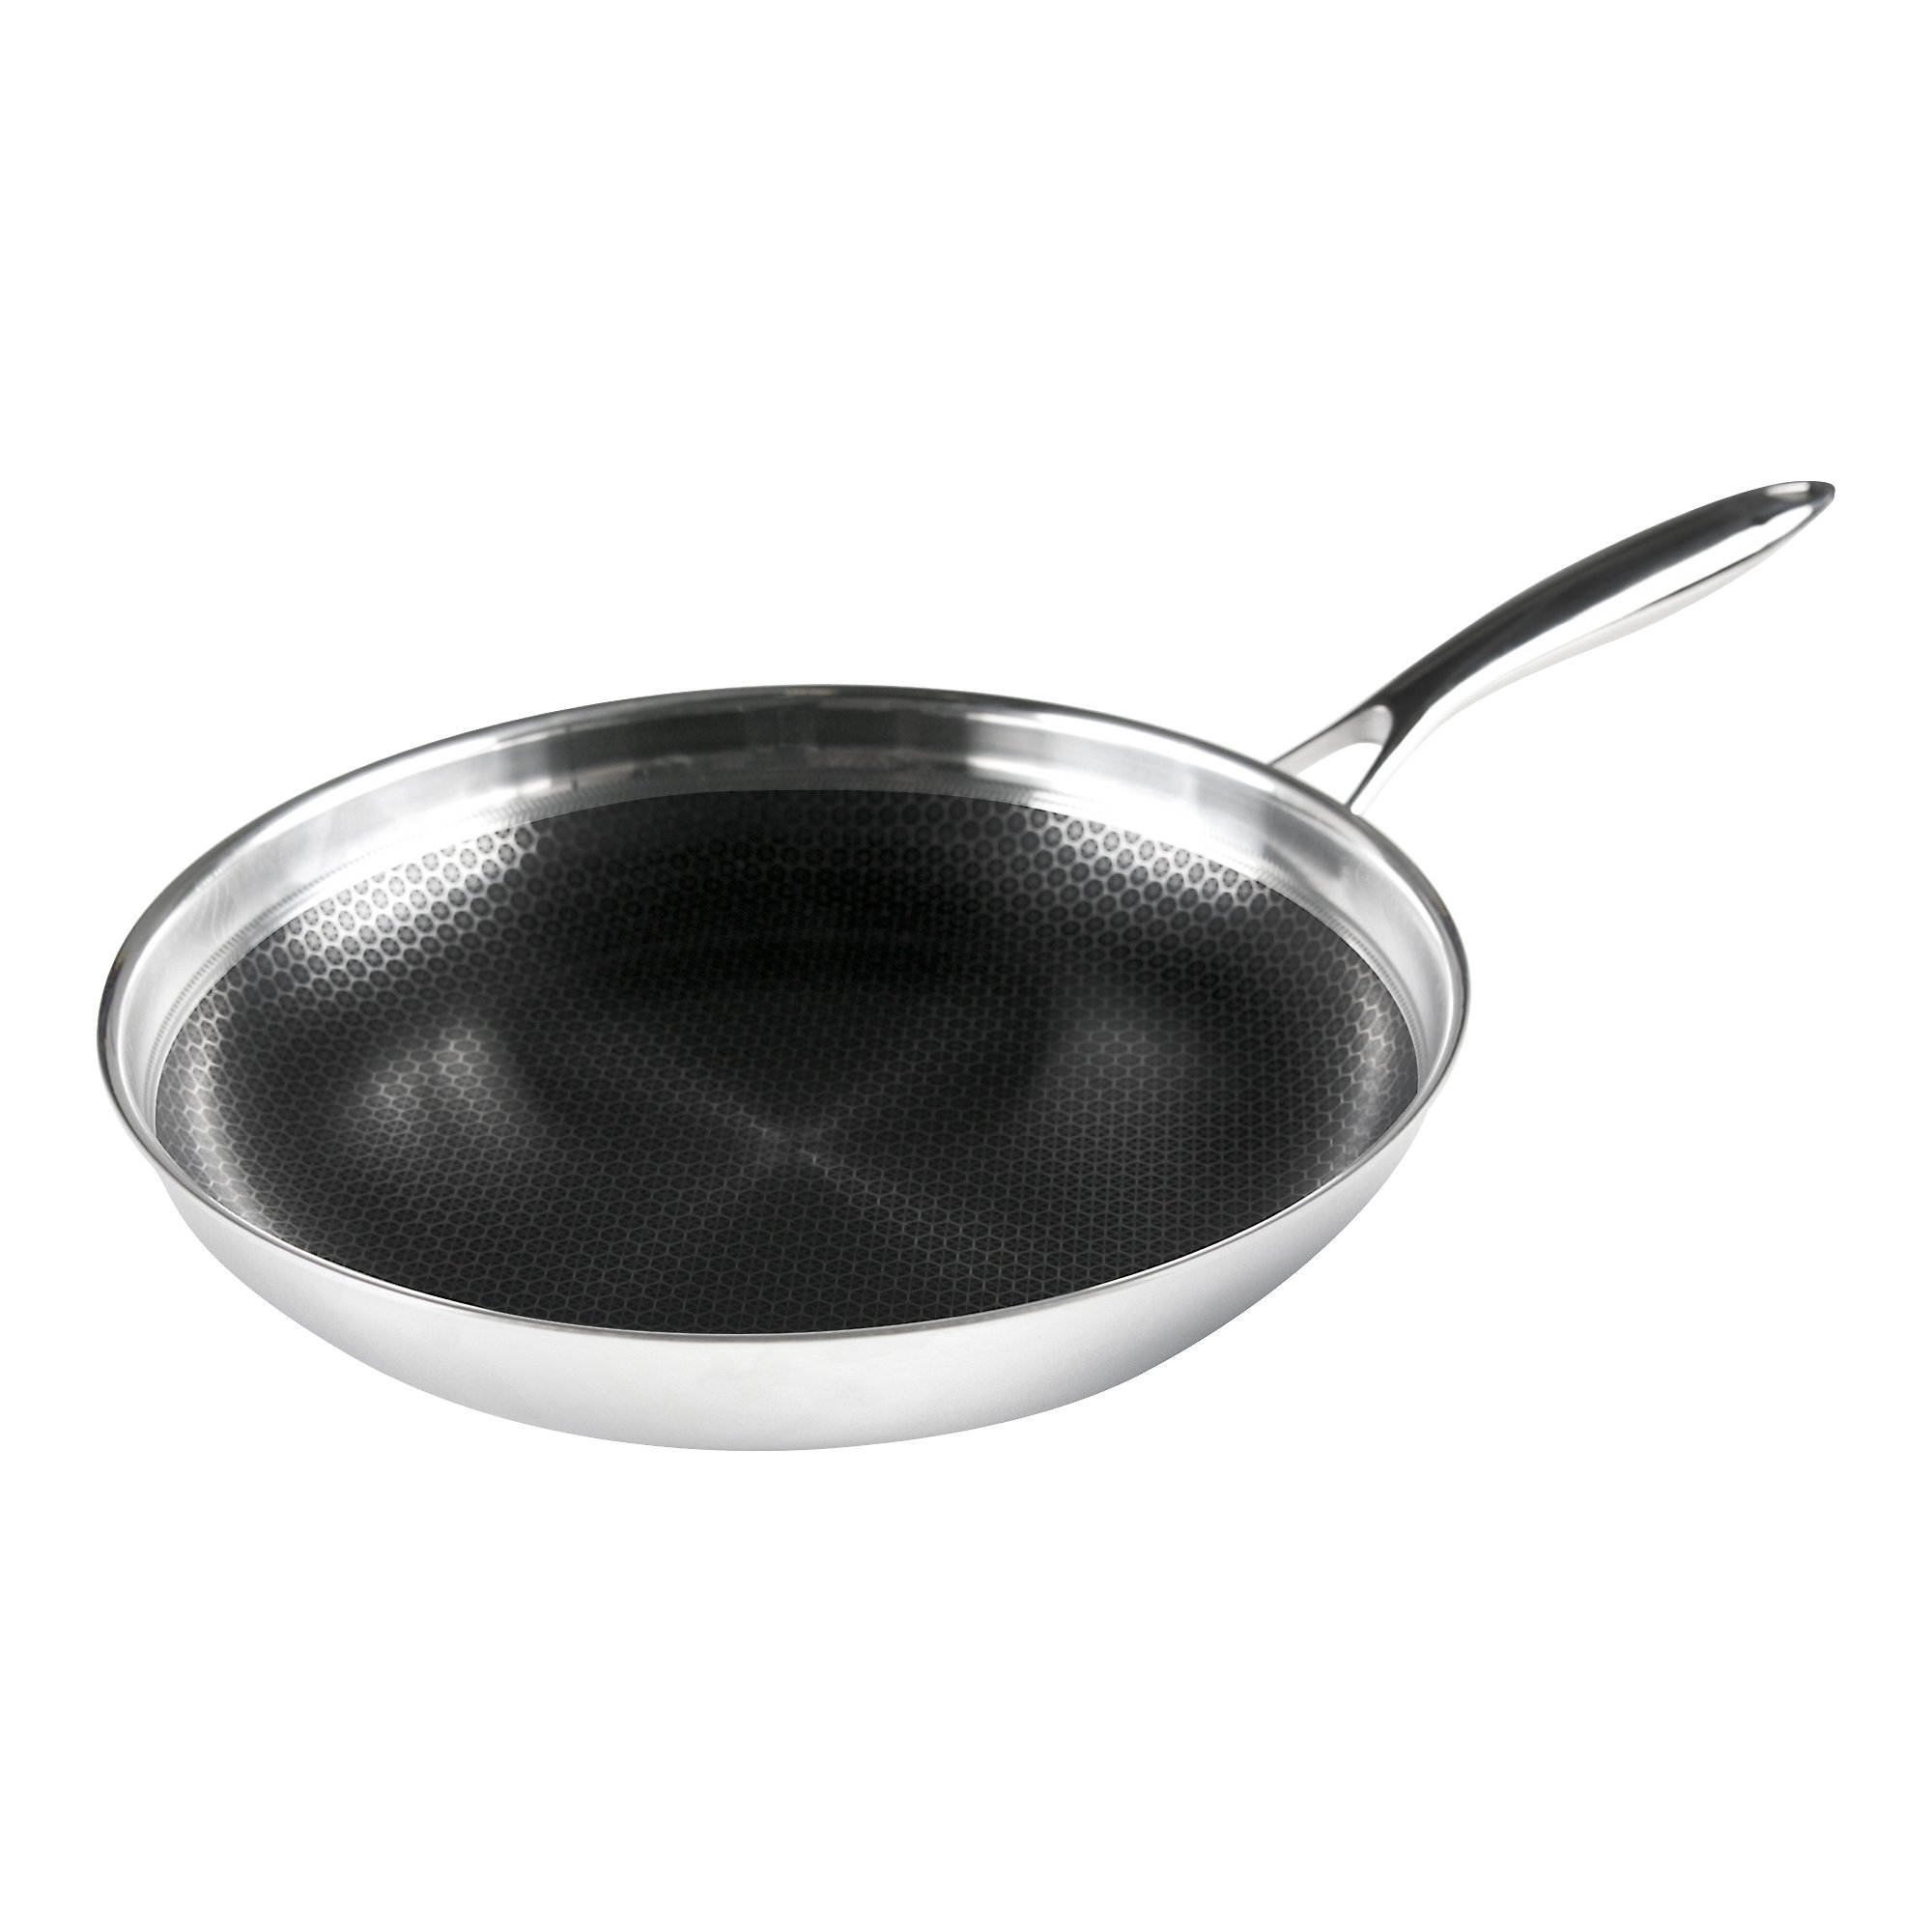 Frieling BC132 Black Cube Hybrid Nonstick Cookware Fry Pan, 12.5'', Stainless